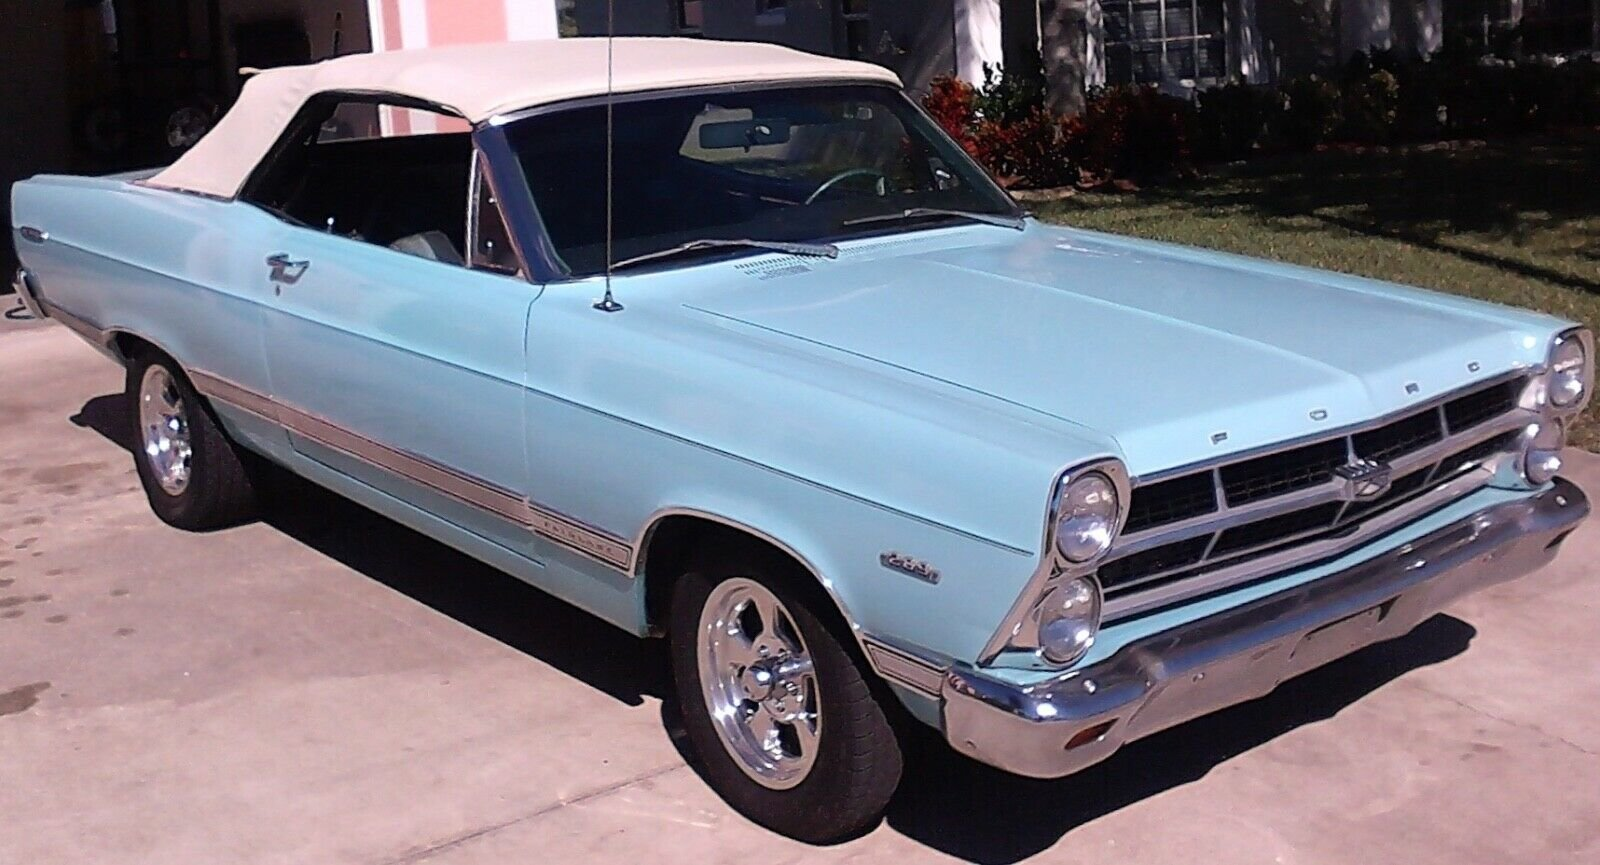 1967 Ford Fairlane Convertible For Sale (picture 1 of 6)